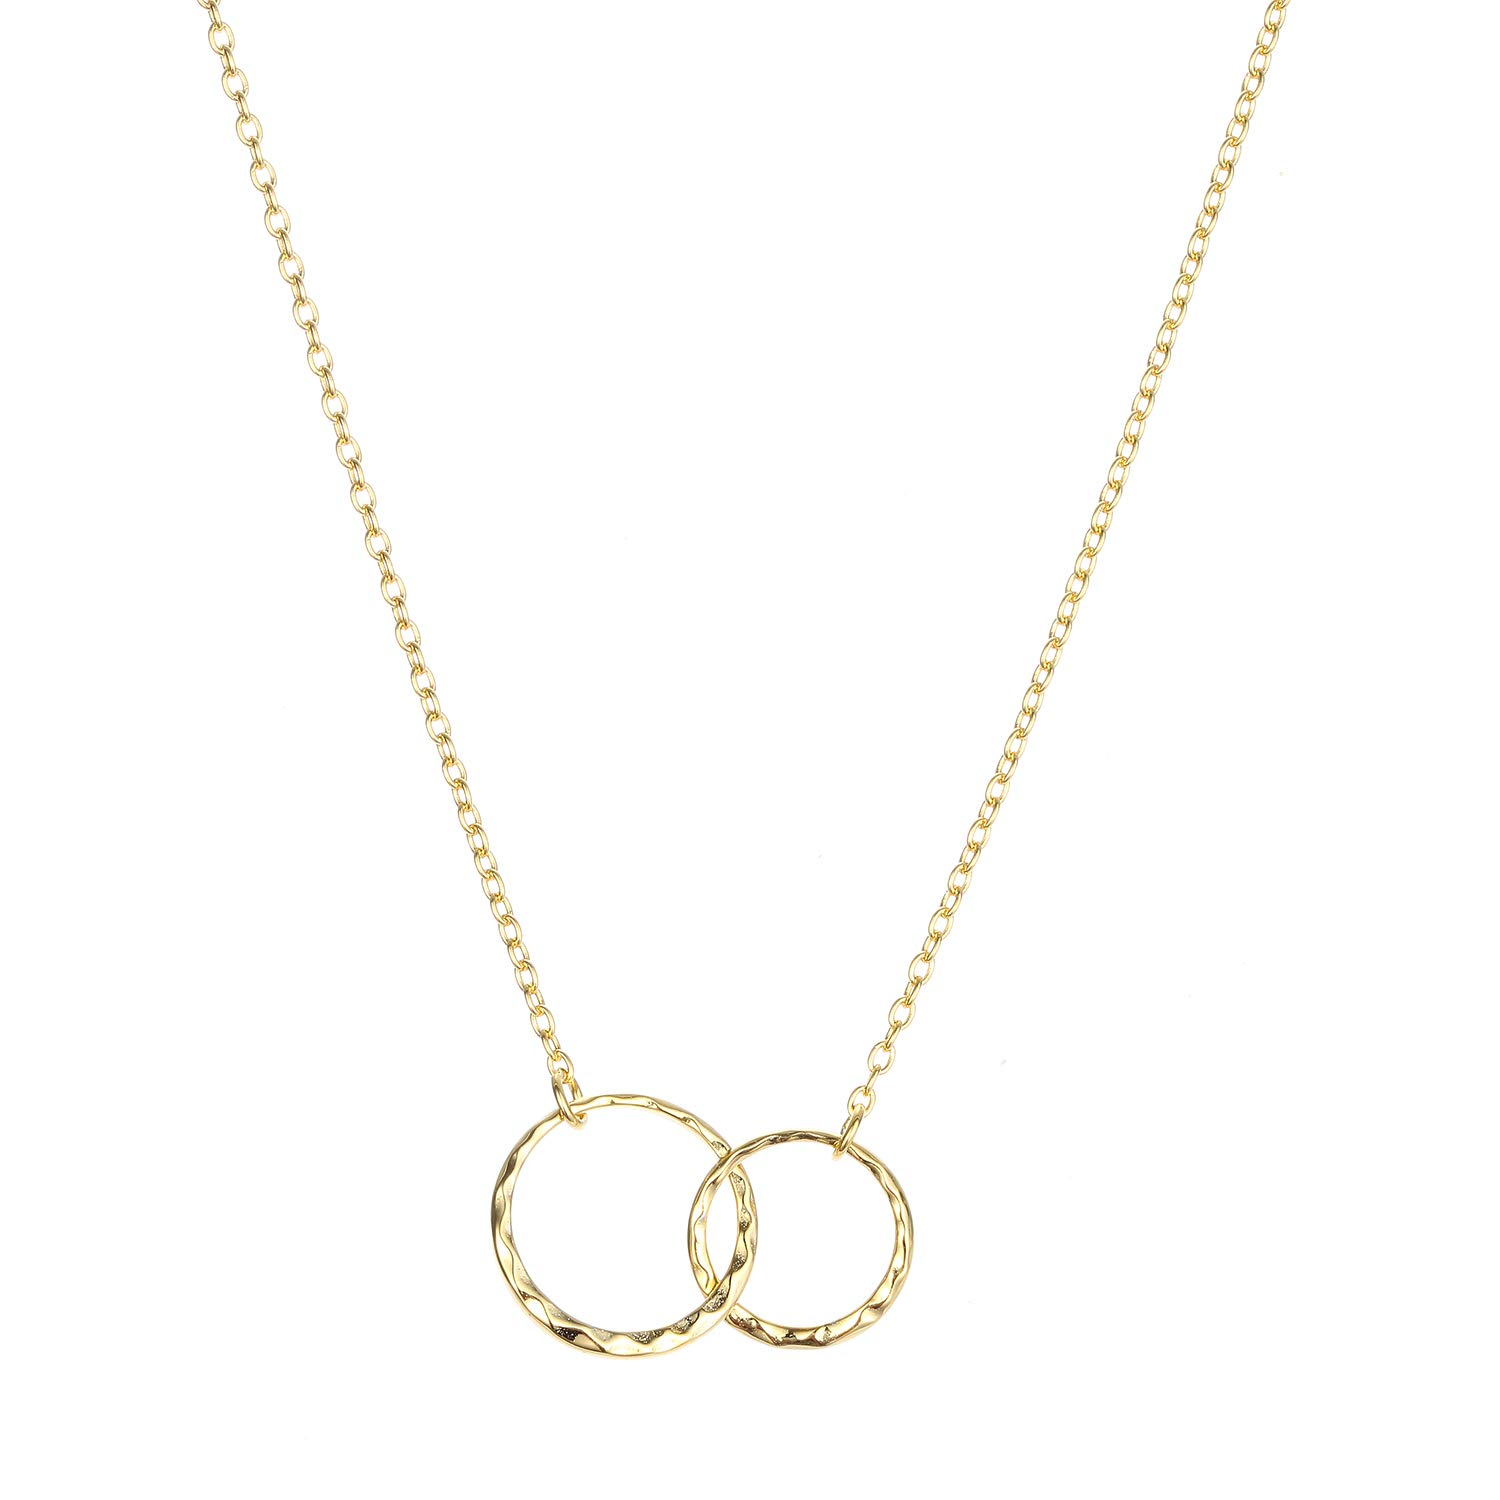 925 Sterling Silver Mother Daughter Necklace Gold-plated Hammered Two Interlocking Infinity Double Circles Necklace